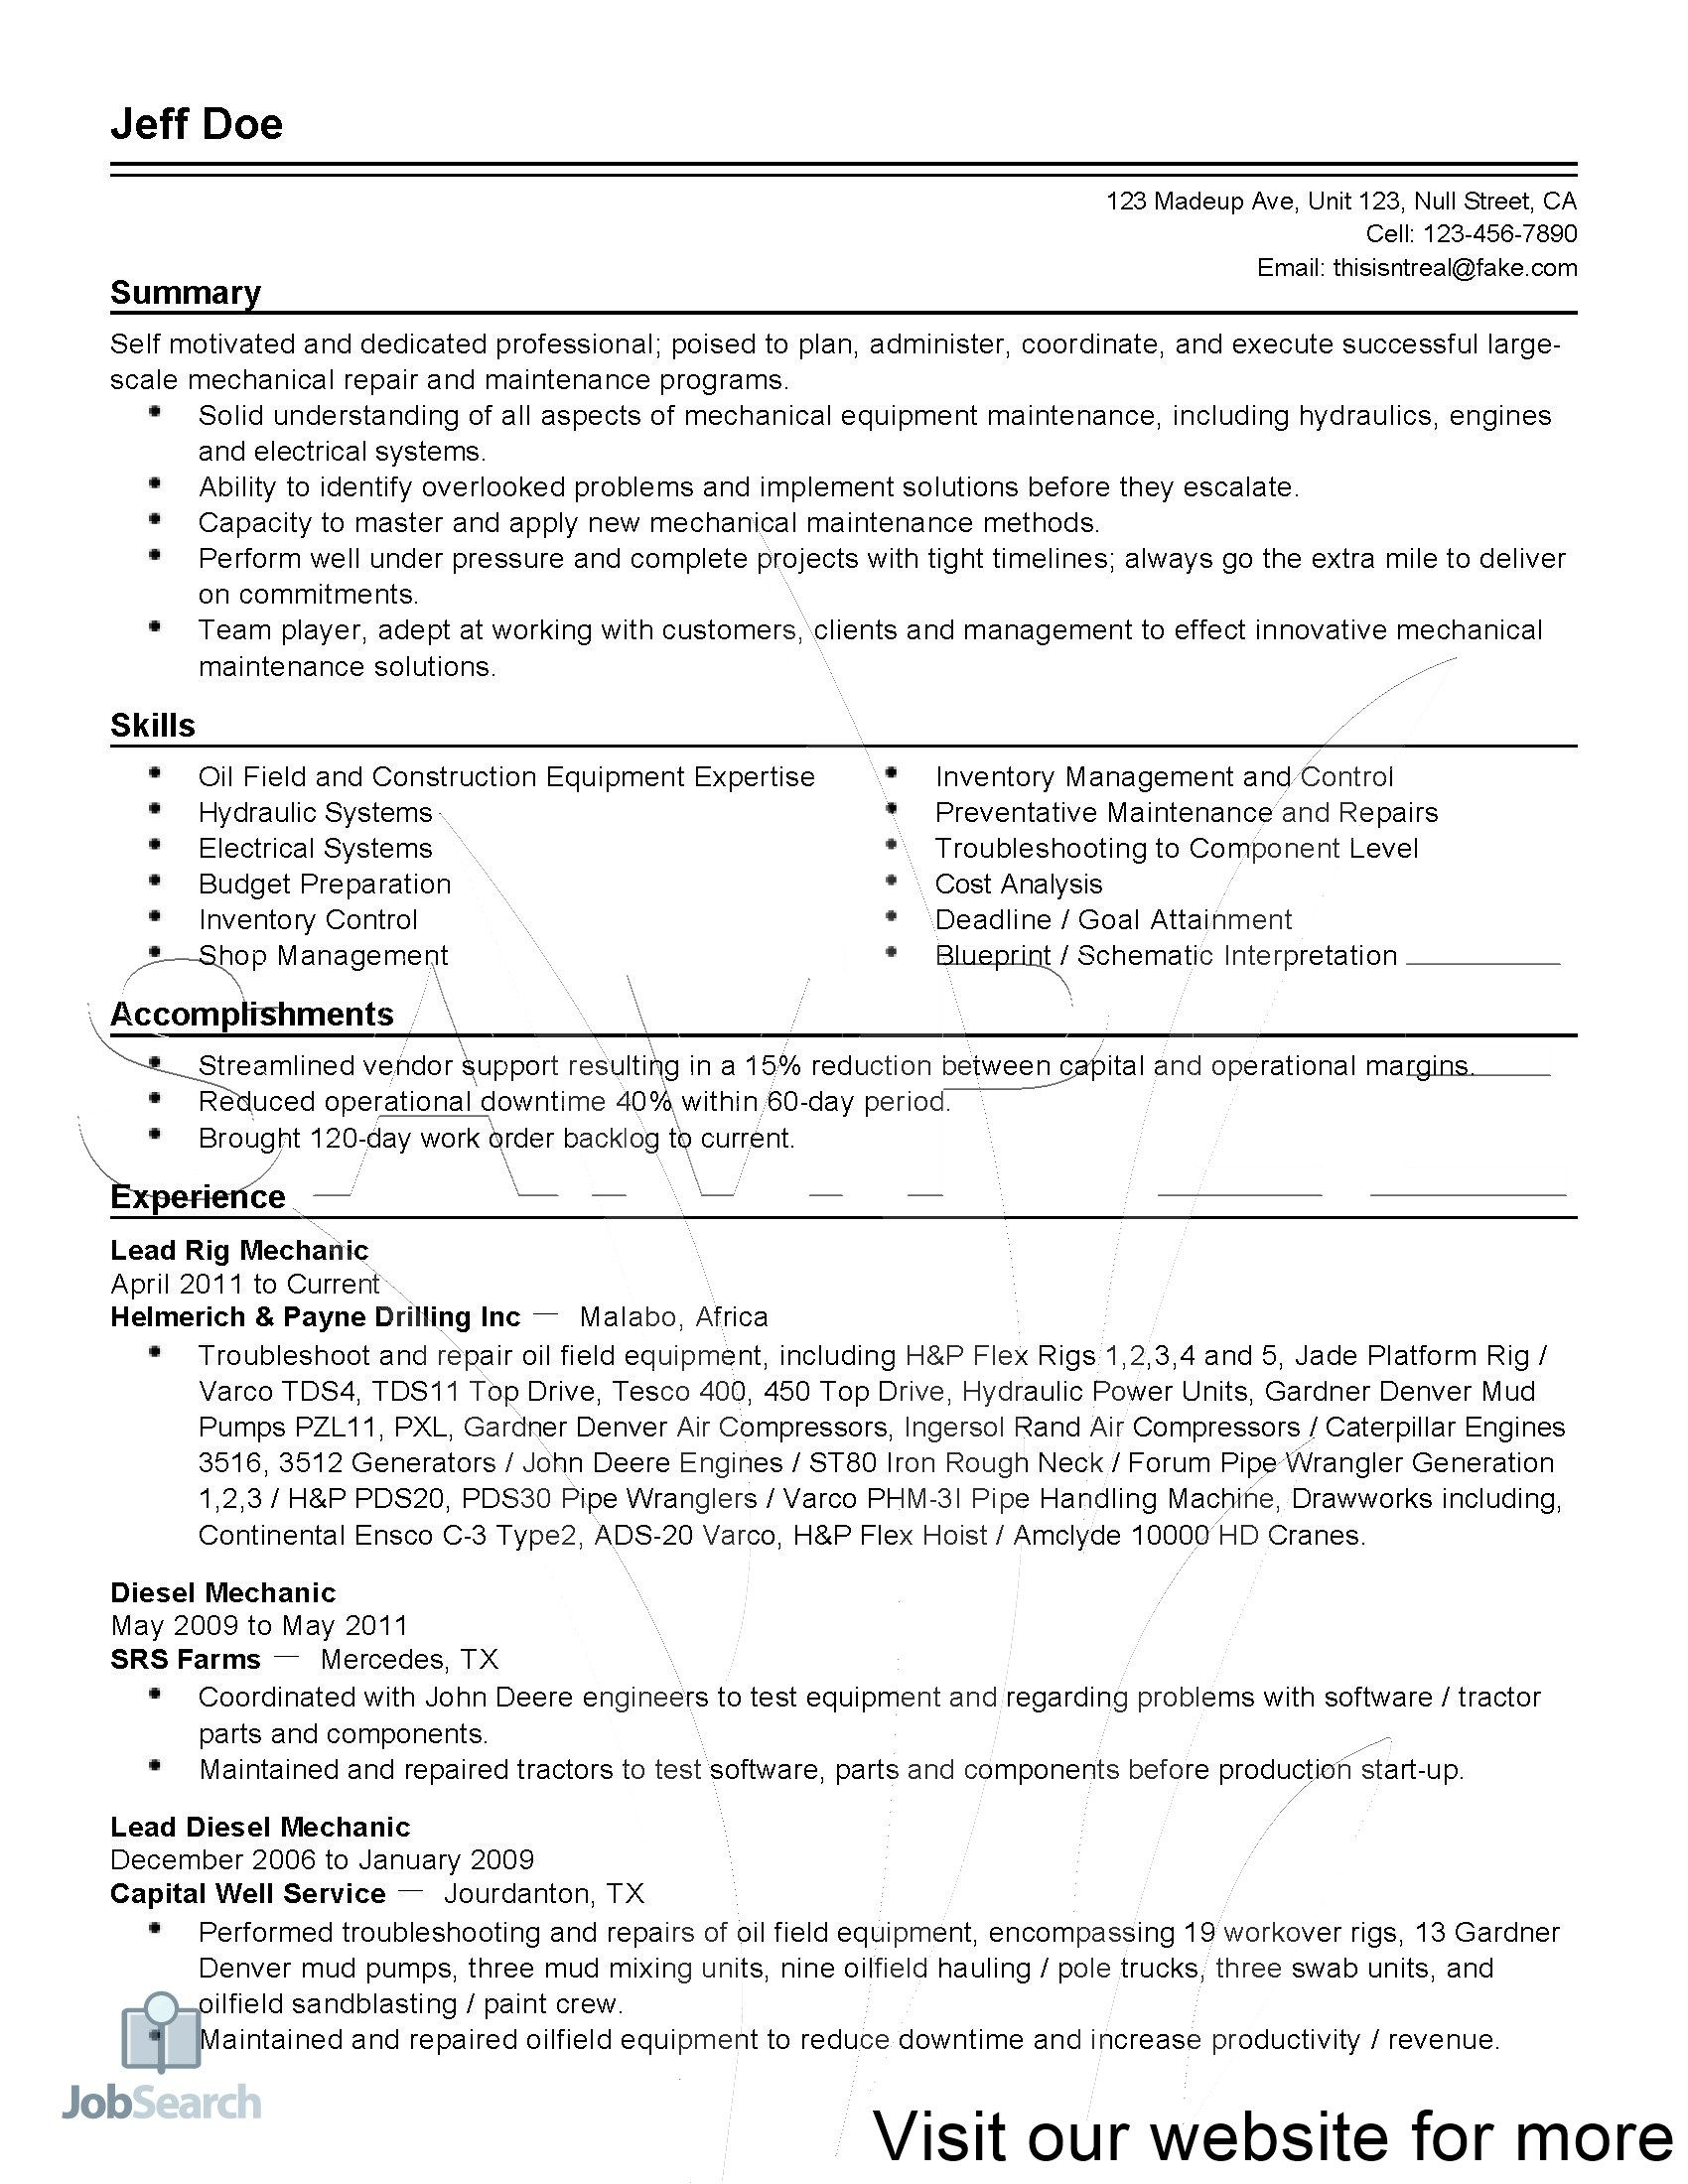 Accounting Resume Template Free Resume Examples Resume Design Template Resume Template Free